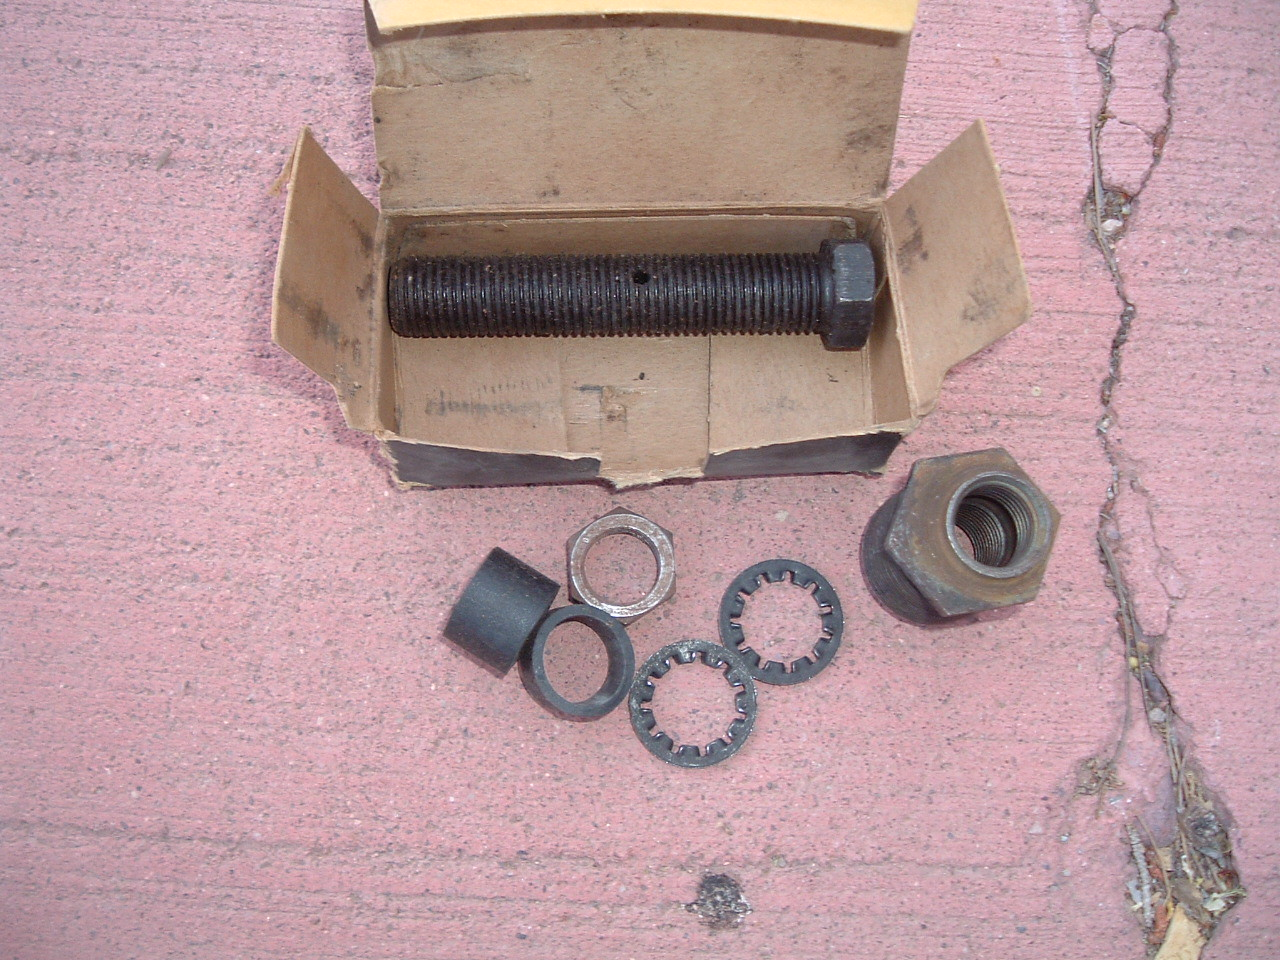 View Product1955 1956 oldsmobile upper control arm knuckle pin kit nos gm 567113 (z 567113)